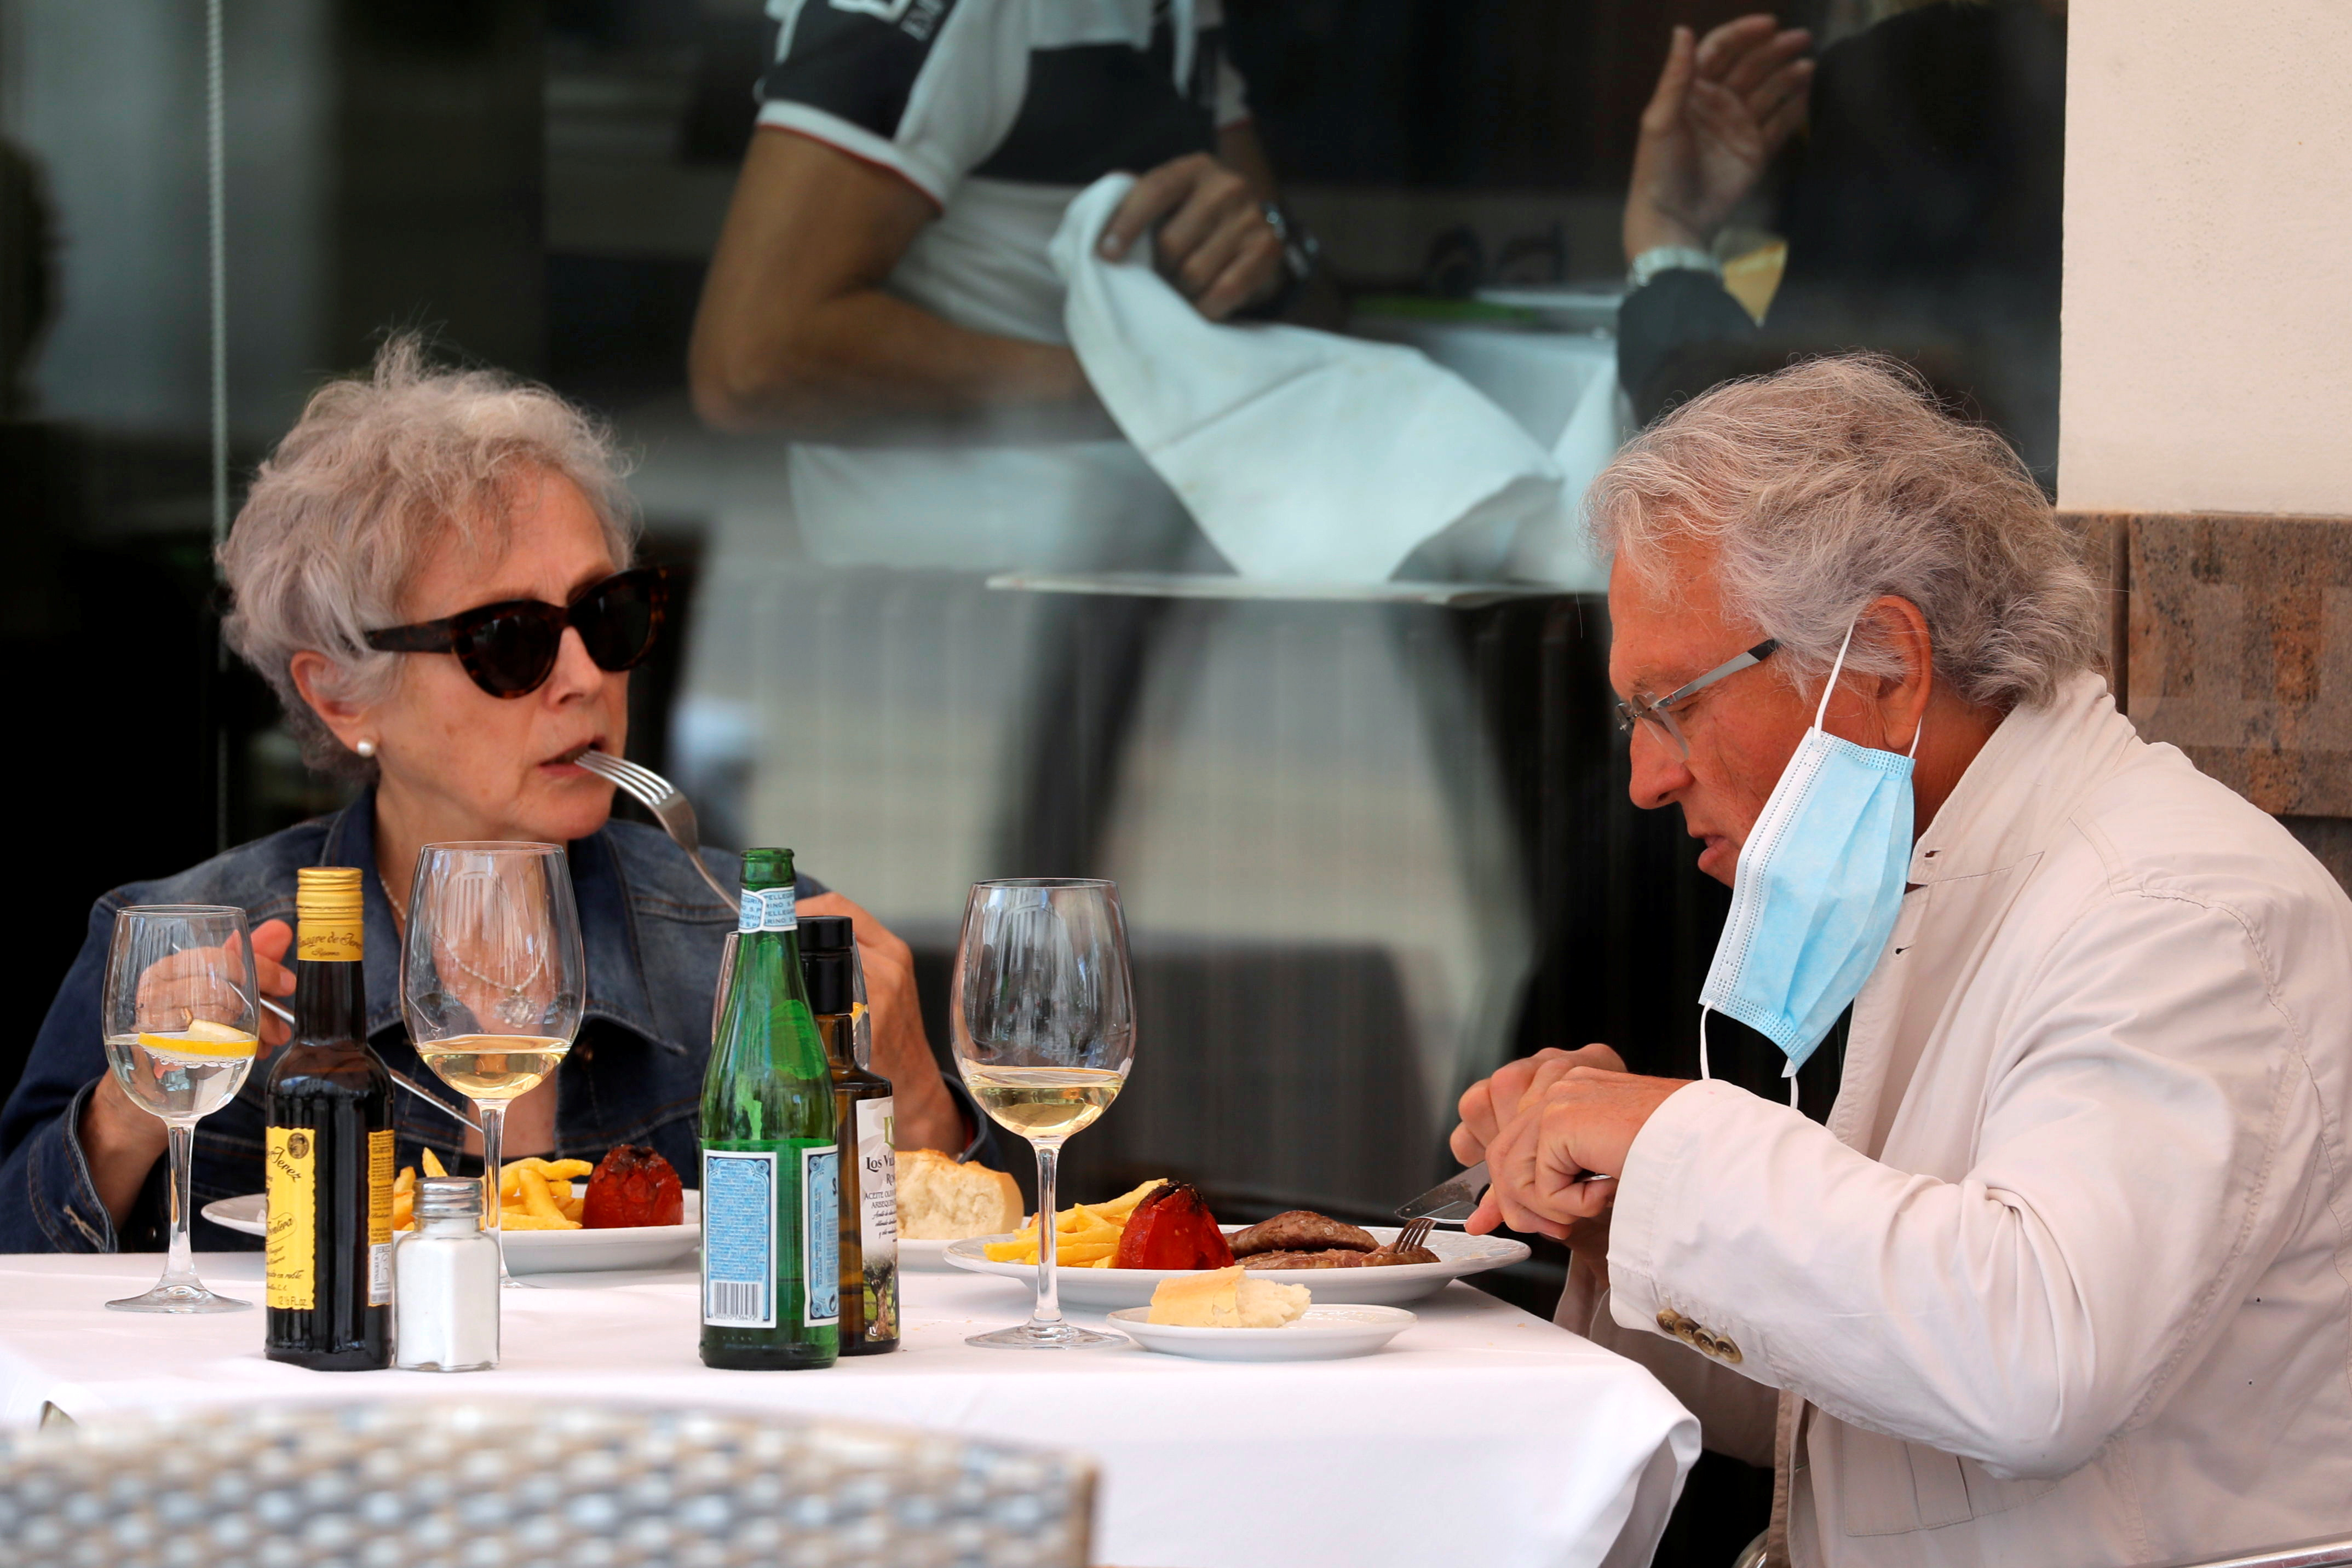 People eat on a restaurant terrace, amid the coronavirus disease (COVID-19) pandemic, in Ronda, Spain, June 18, 2021. Spanish Prime Minister Pedro Sanchez announced on Friday, the lifting of the blanket obligation to wear masks outdoors from June 26. REUTERS/Jon Nazca